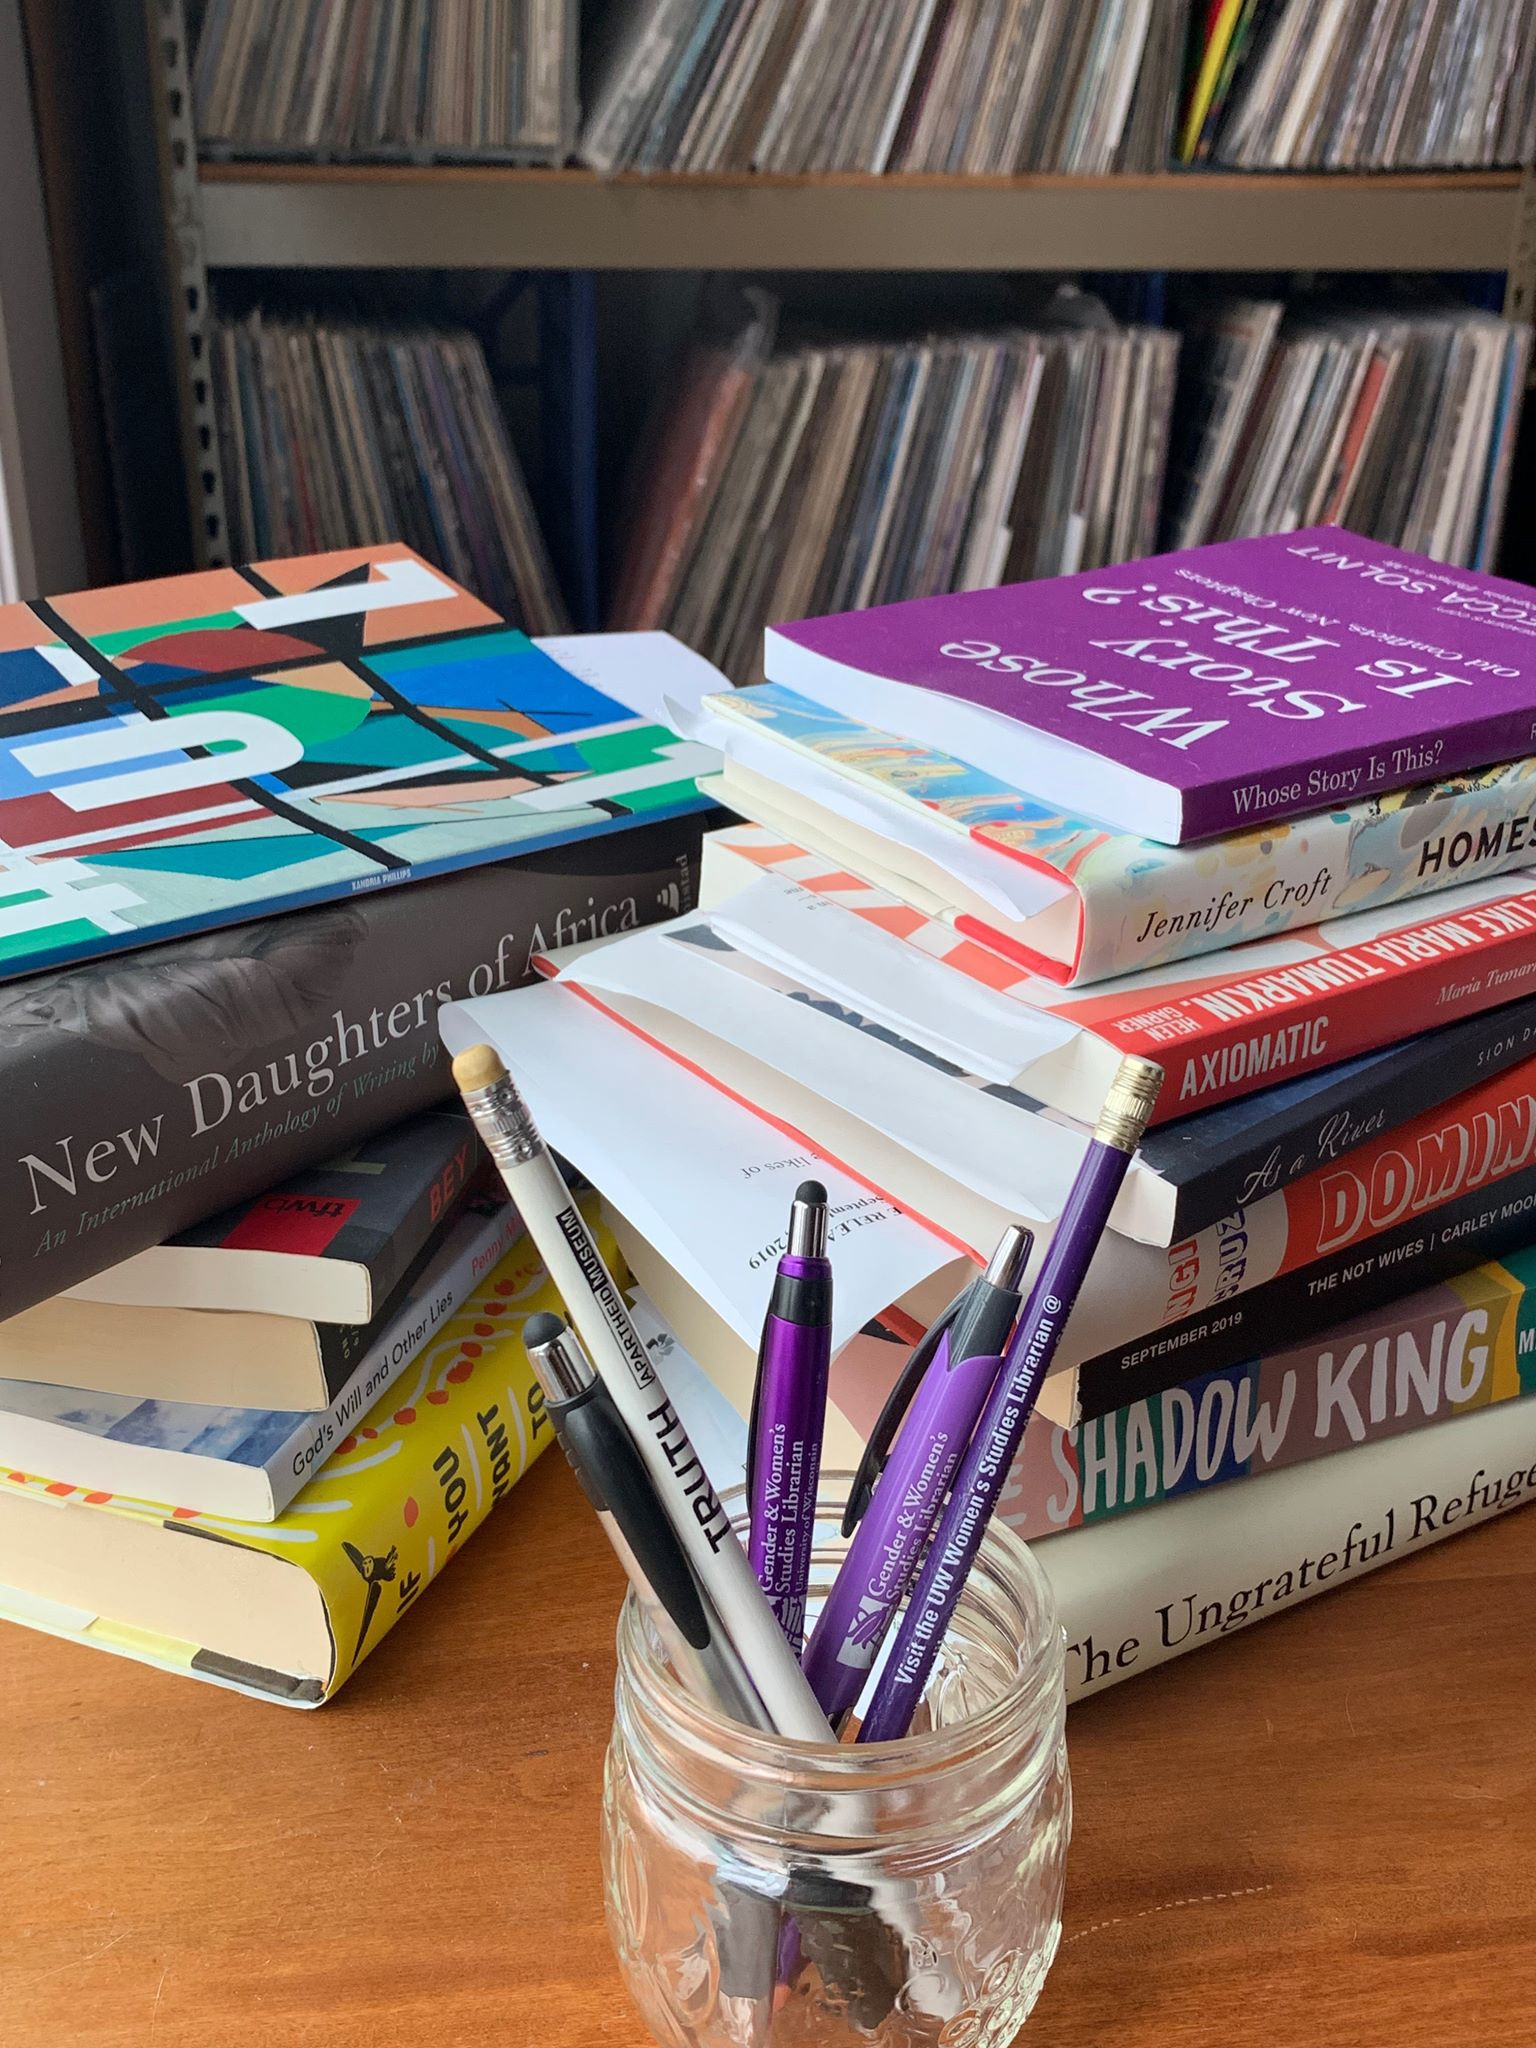 Photo by Karla Strand of two piles of books and a glass jar with purple and white pens and pencils in it.